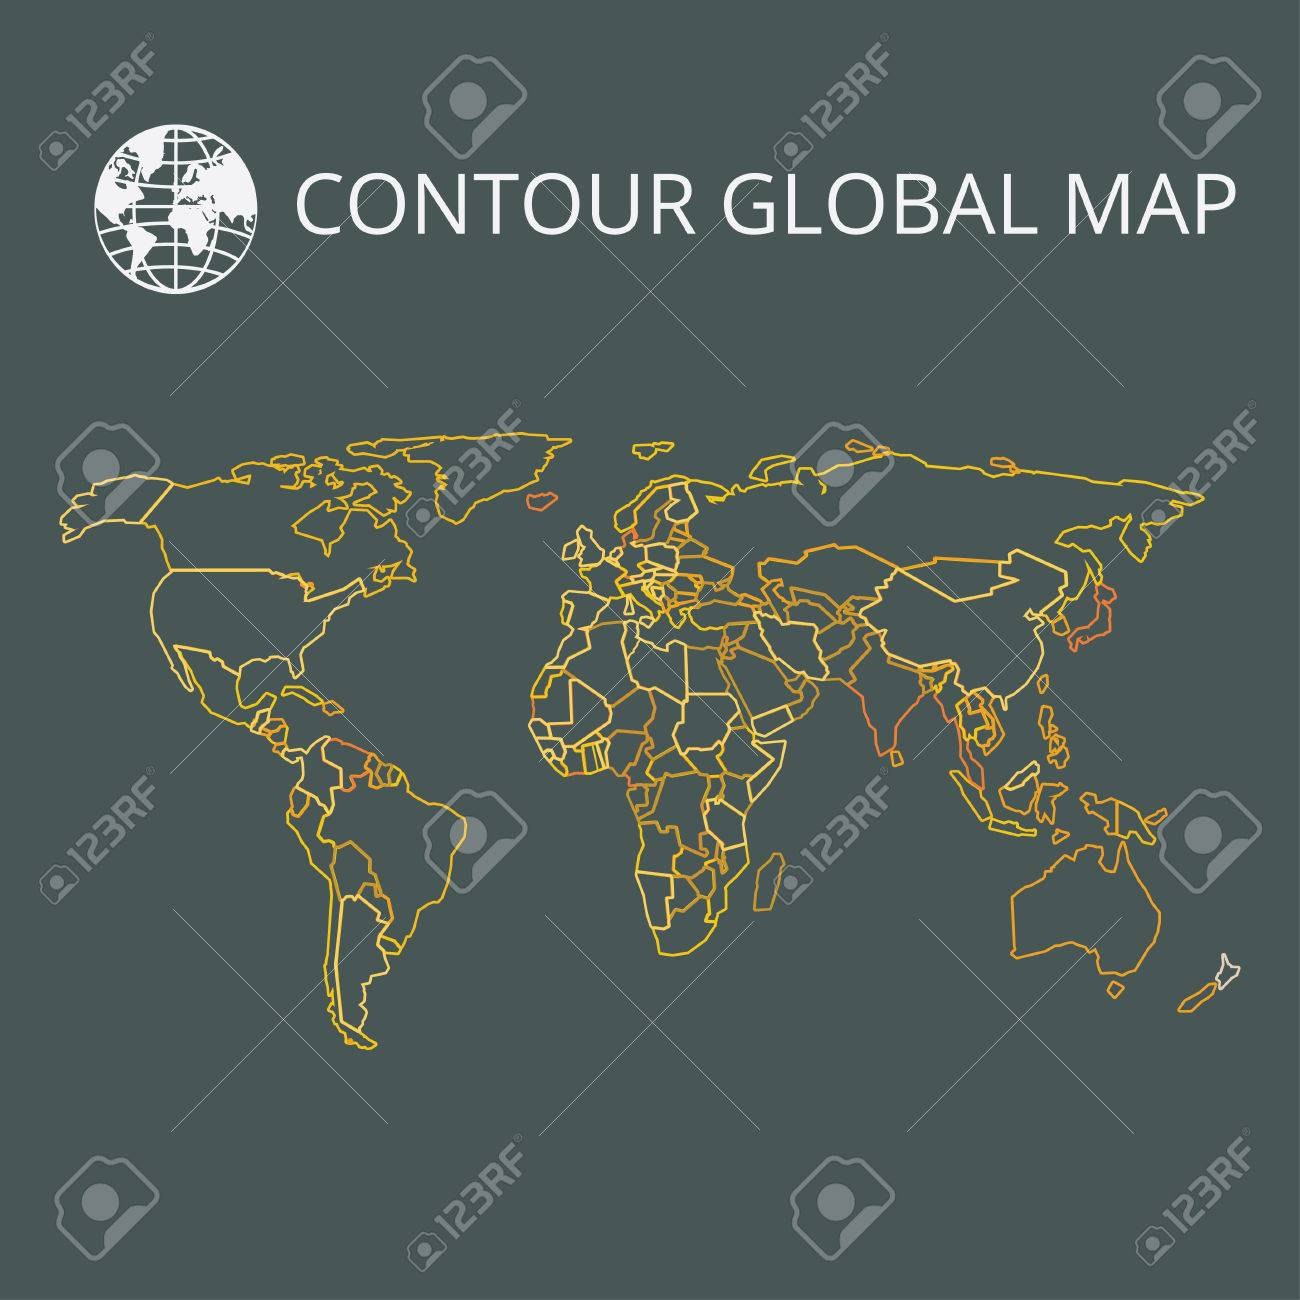 World map vector illustration high quality image in the style high quality image in the style of broken lines detail and continents of the world colour identification global map for your design or application gumiabroncs Choice Image